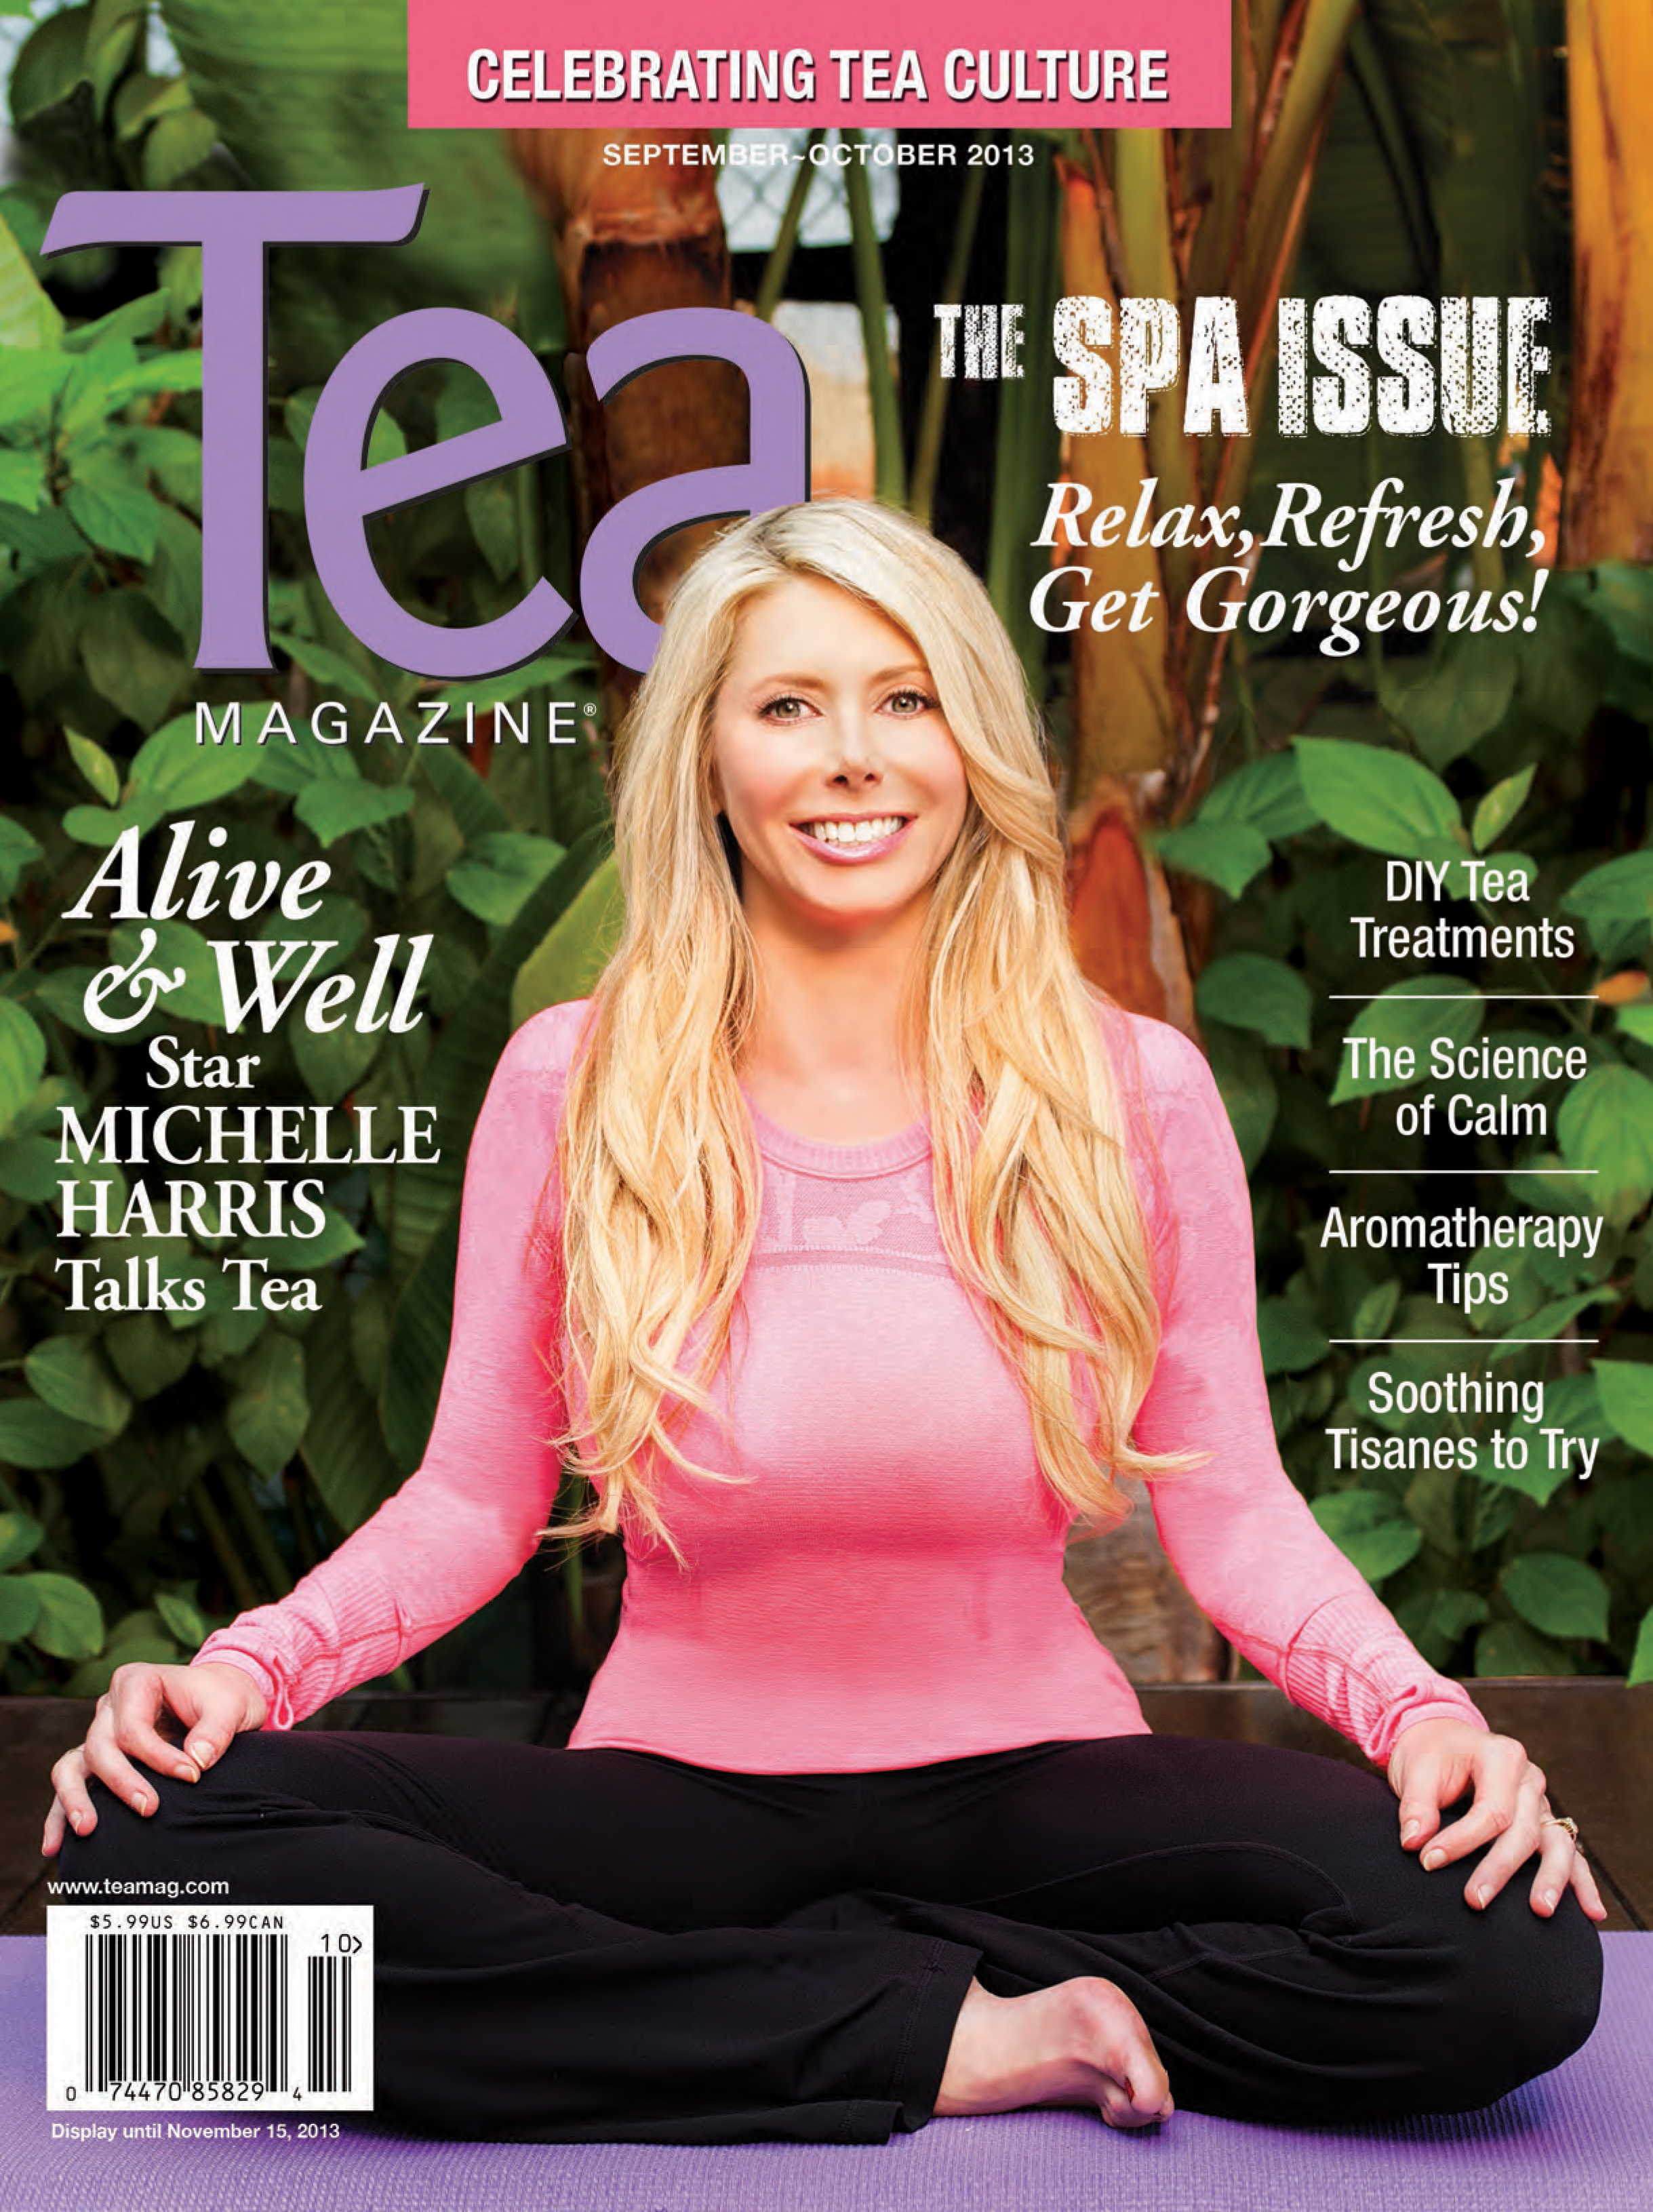 Michelle Harris of Alive and Well TV Show on the cover of Tea Magazine.